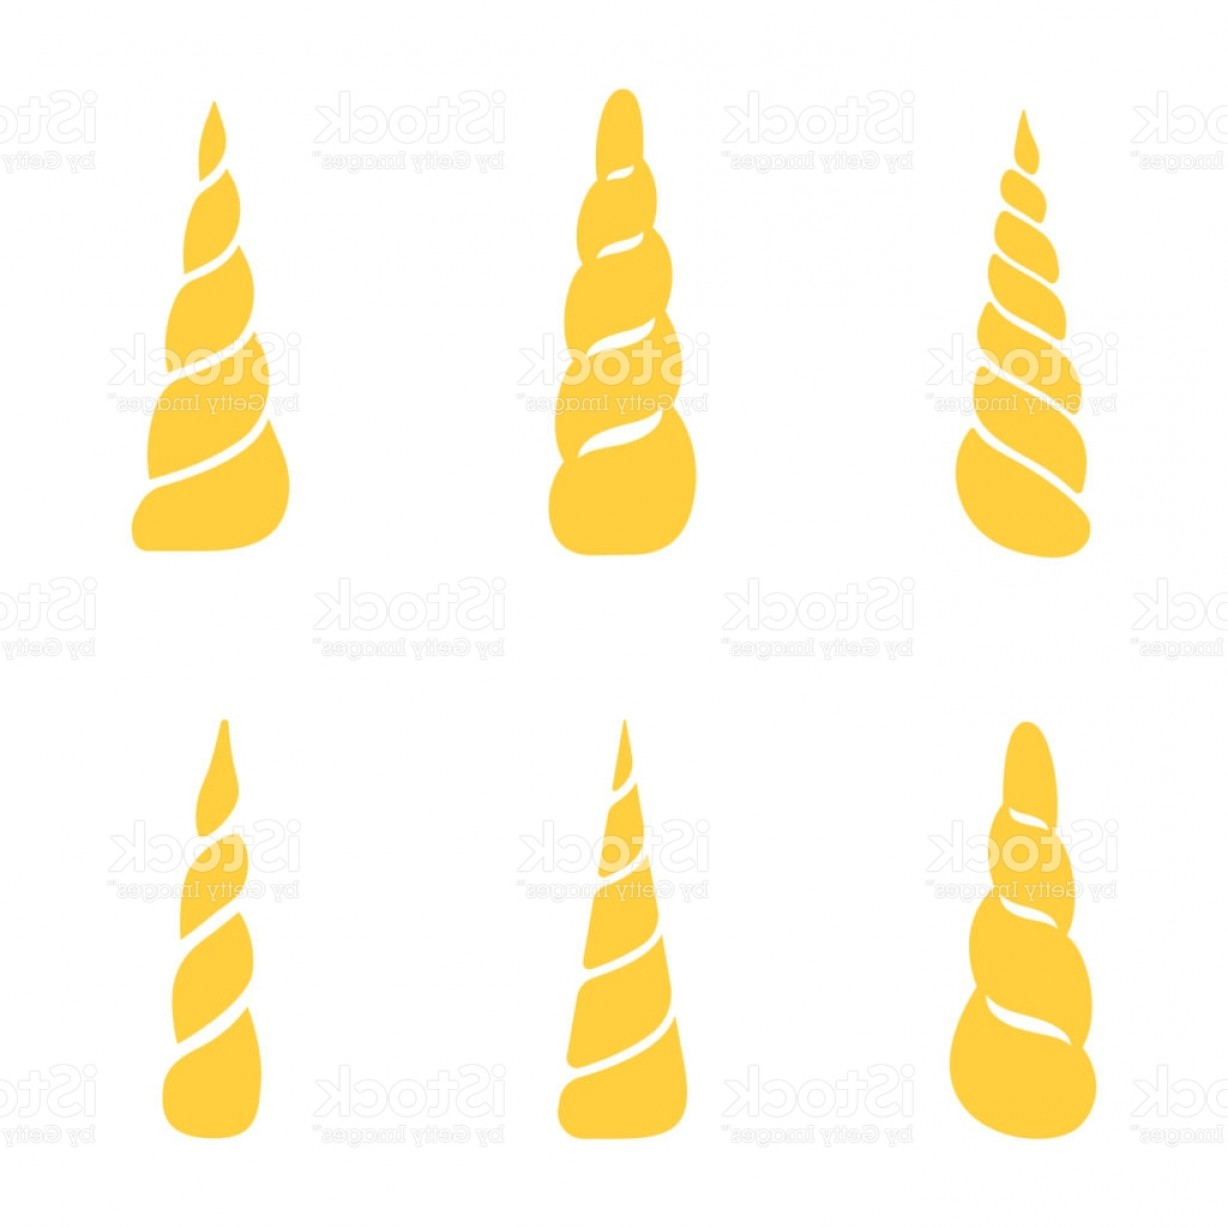 Unicorn Horn Vector: Collection Of Unicorn Horns Isolated On White Background Vector Gm